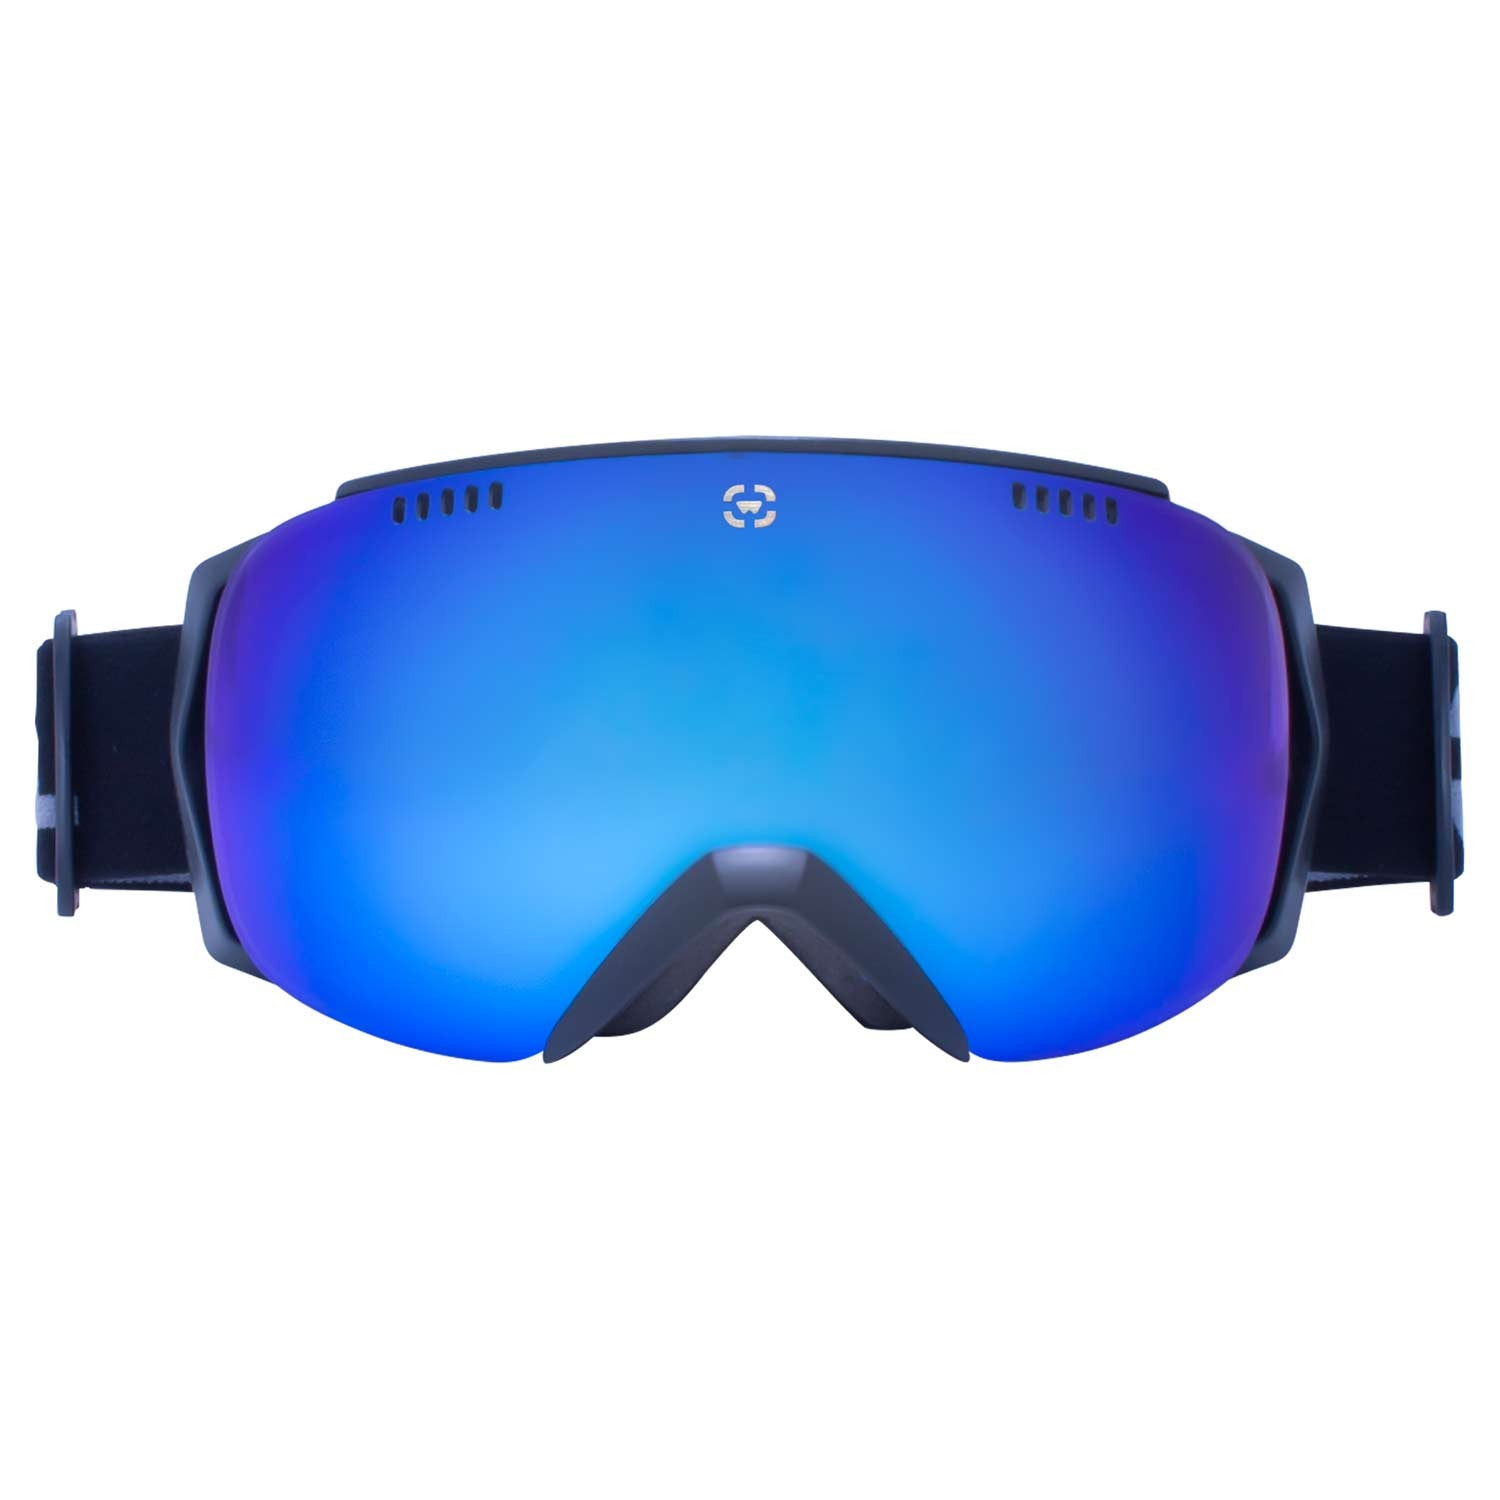 blue snowboard goggles u9ie  snowboard goggles with black frames and blue lenses